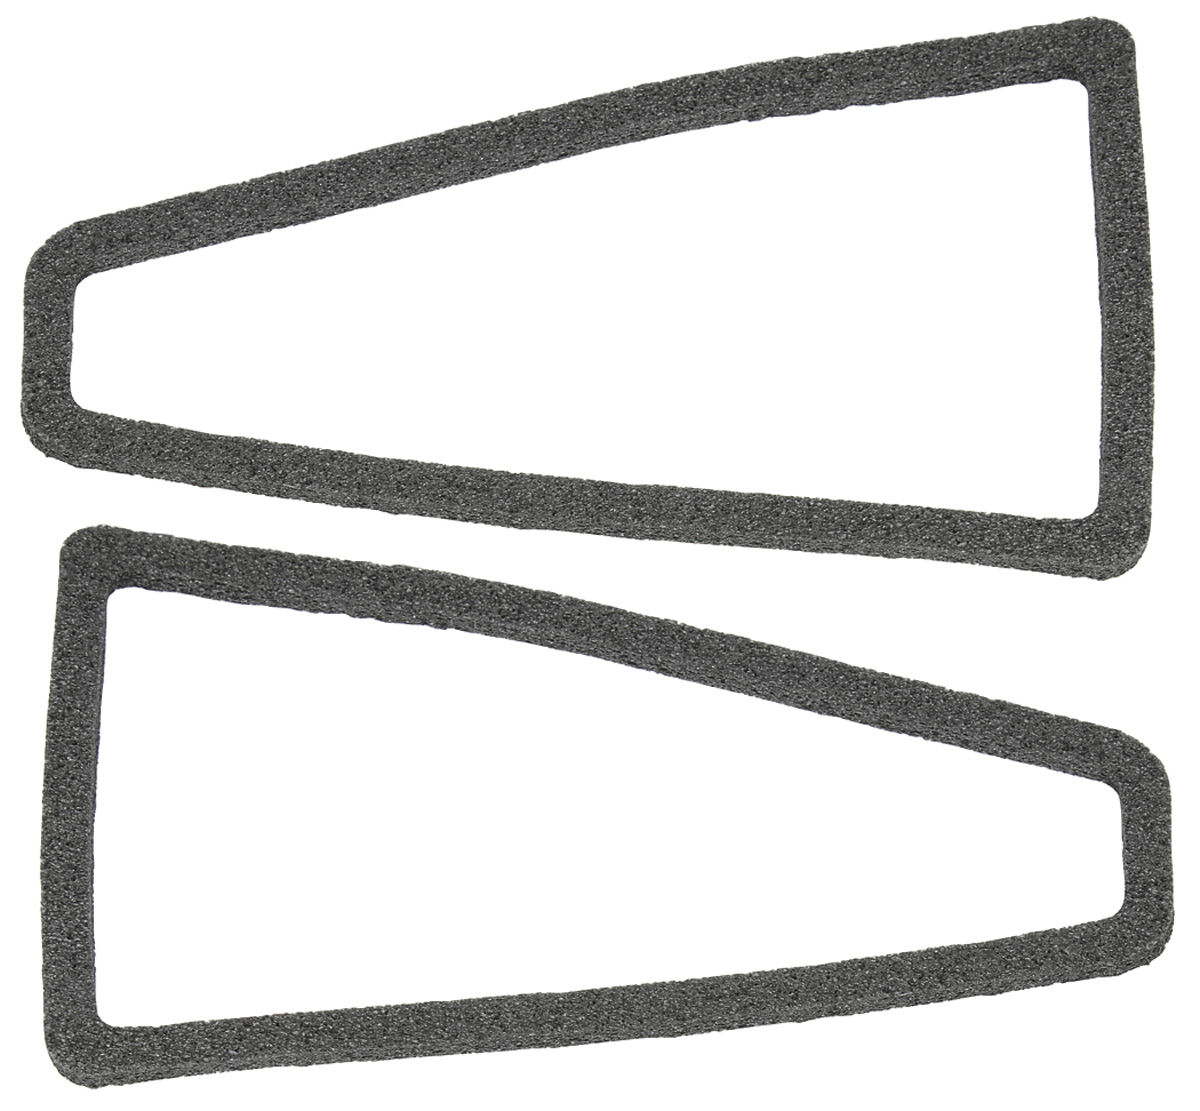 Gasket, Tail Fin Lamp Lens, 1964-65 Cadillac